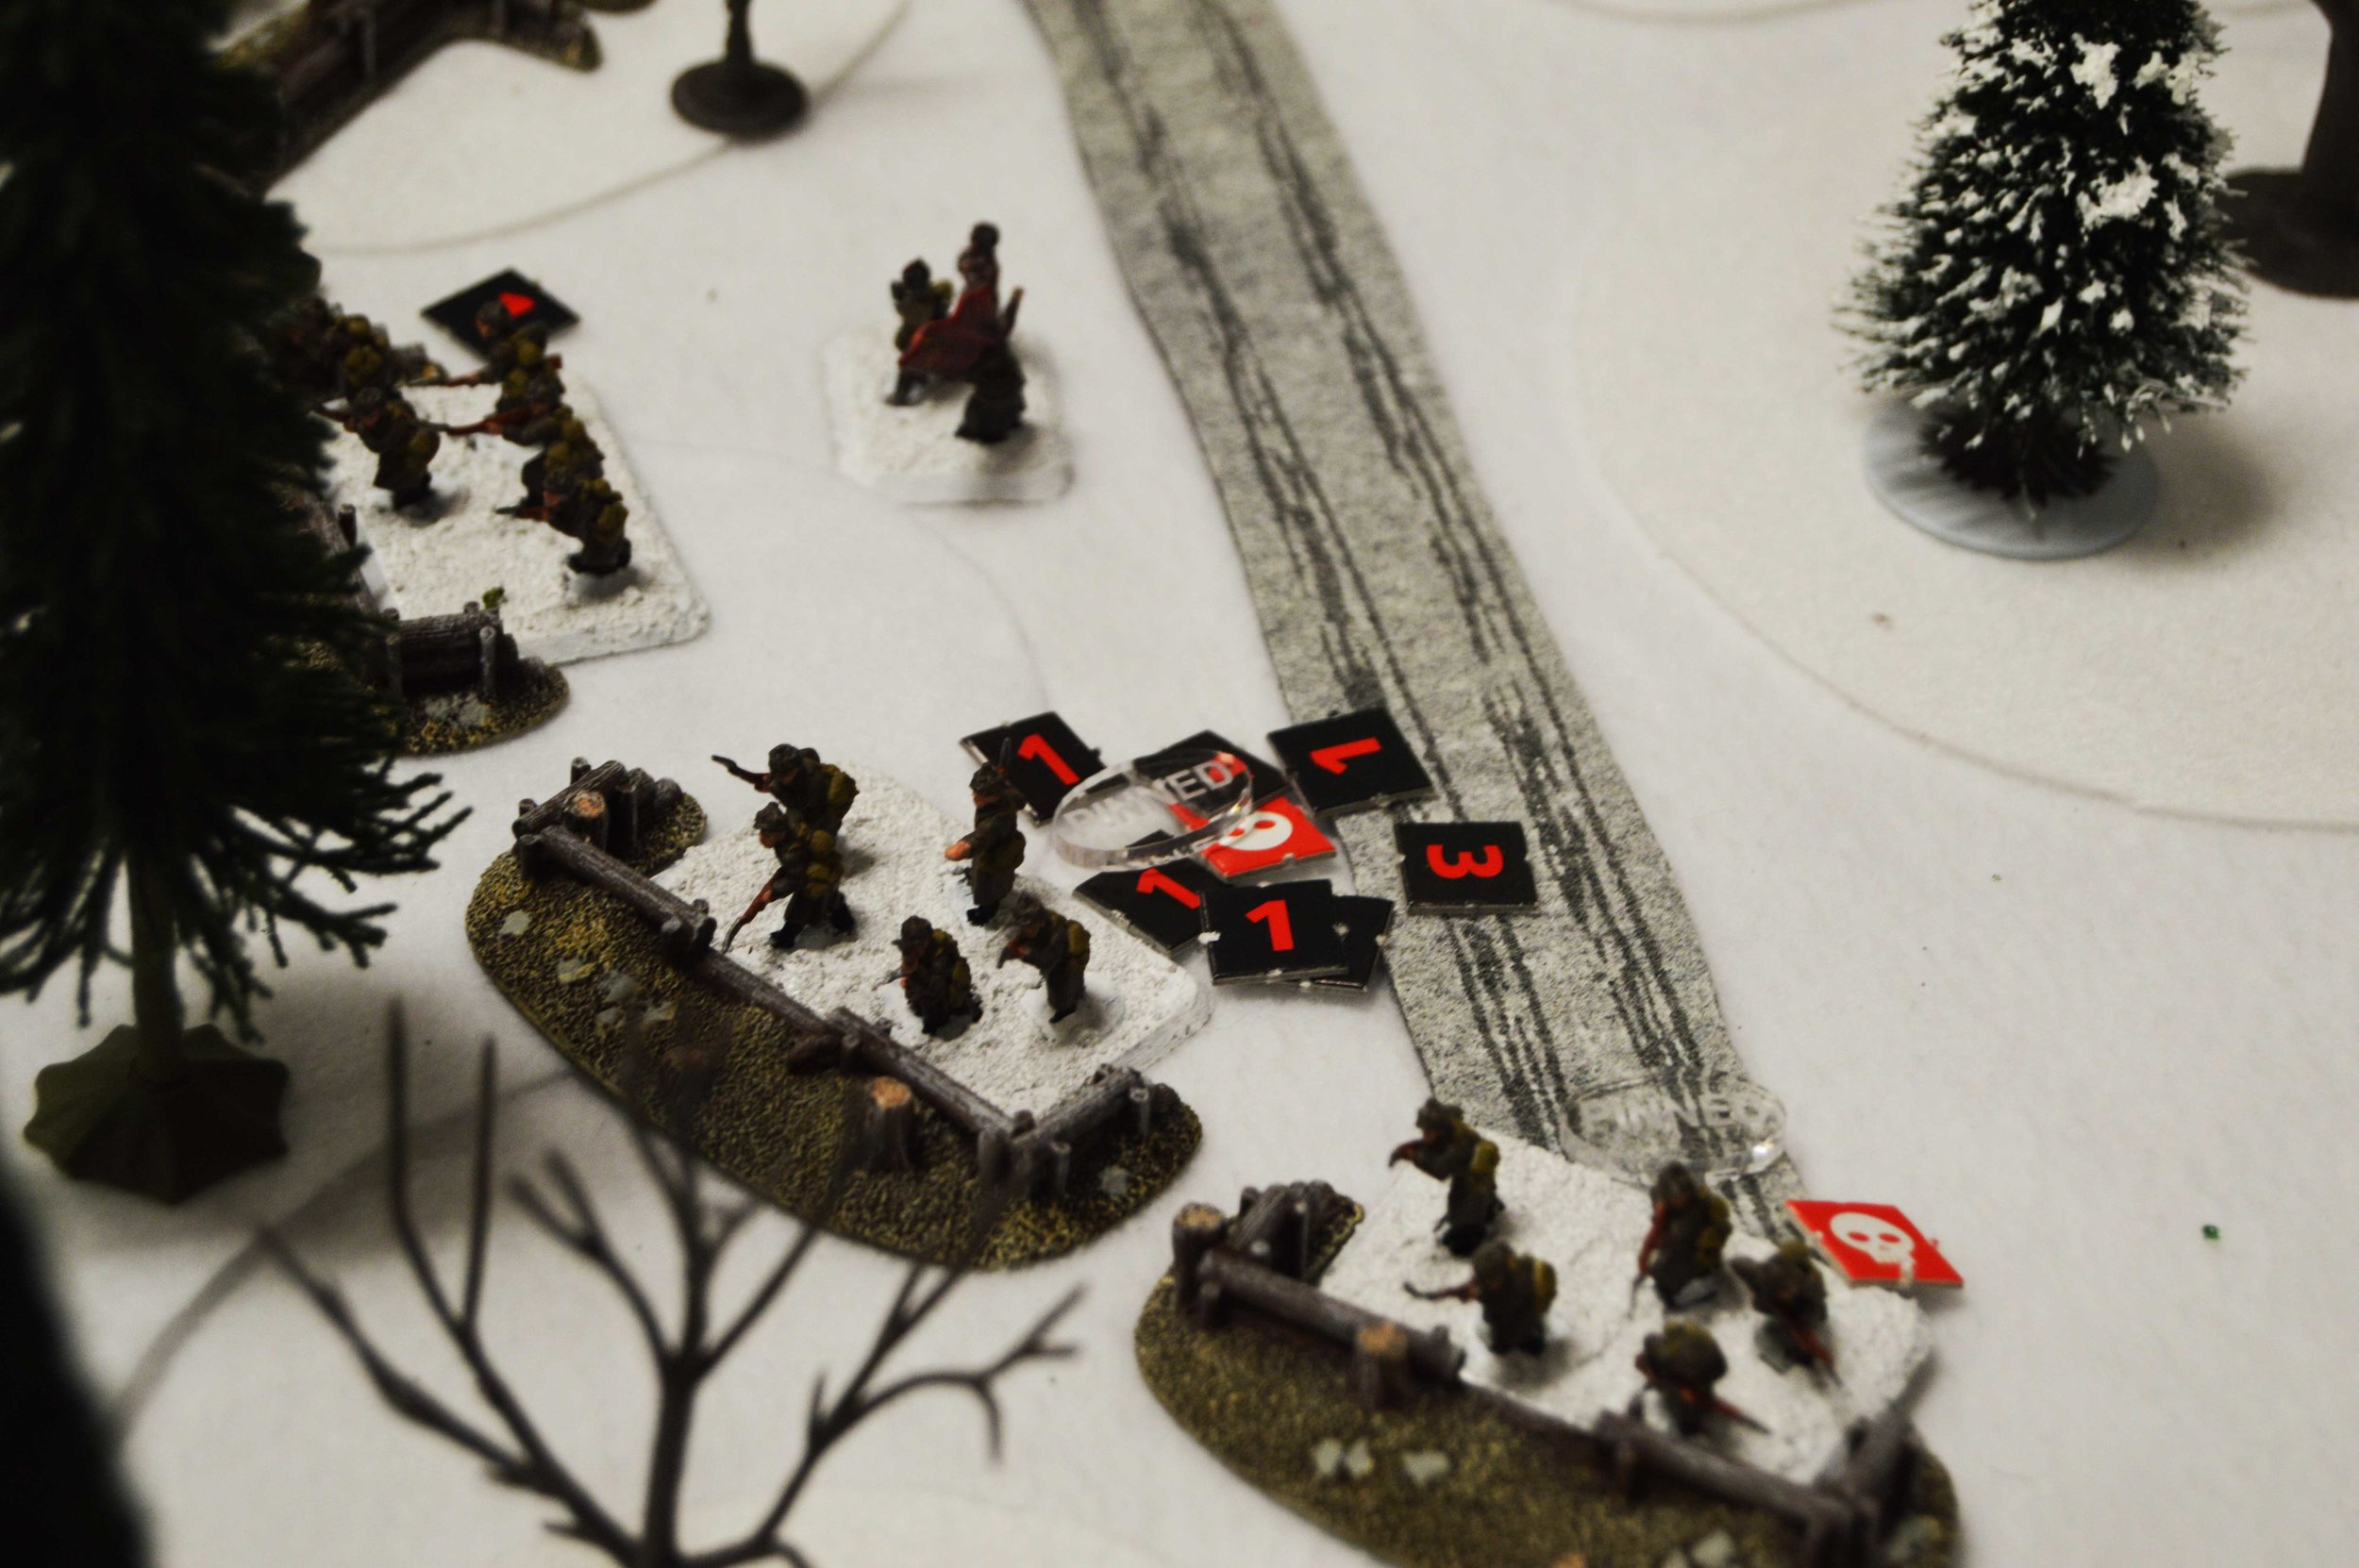 The Soviets hold the line, despite severe casualties and pinning fire.